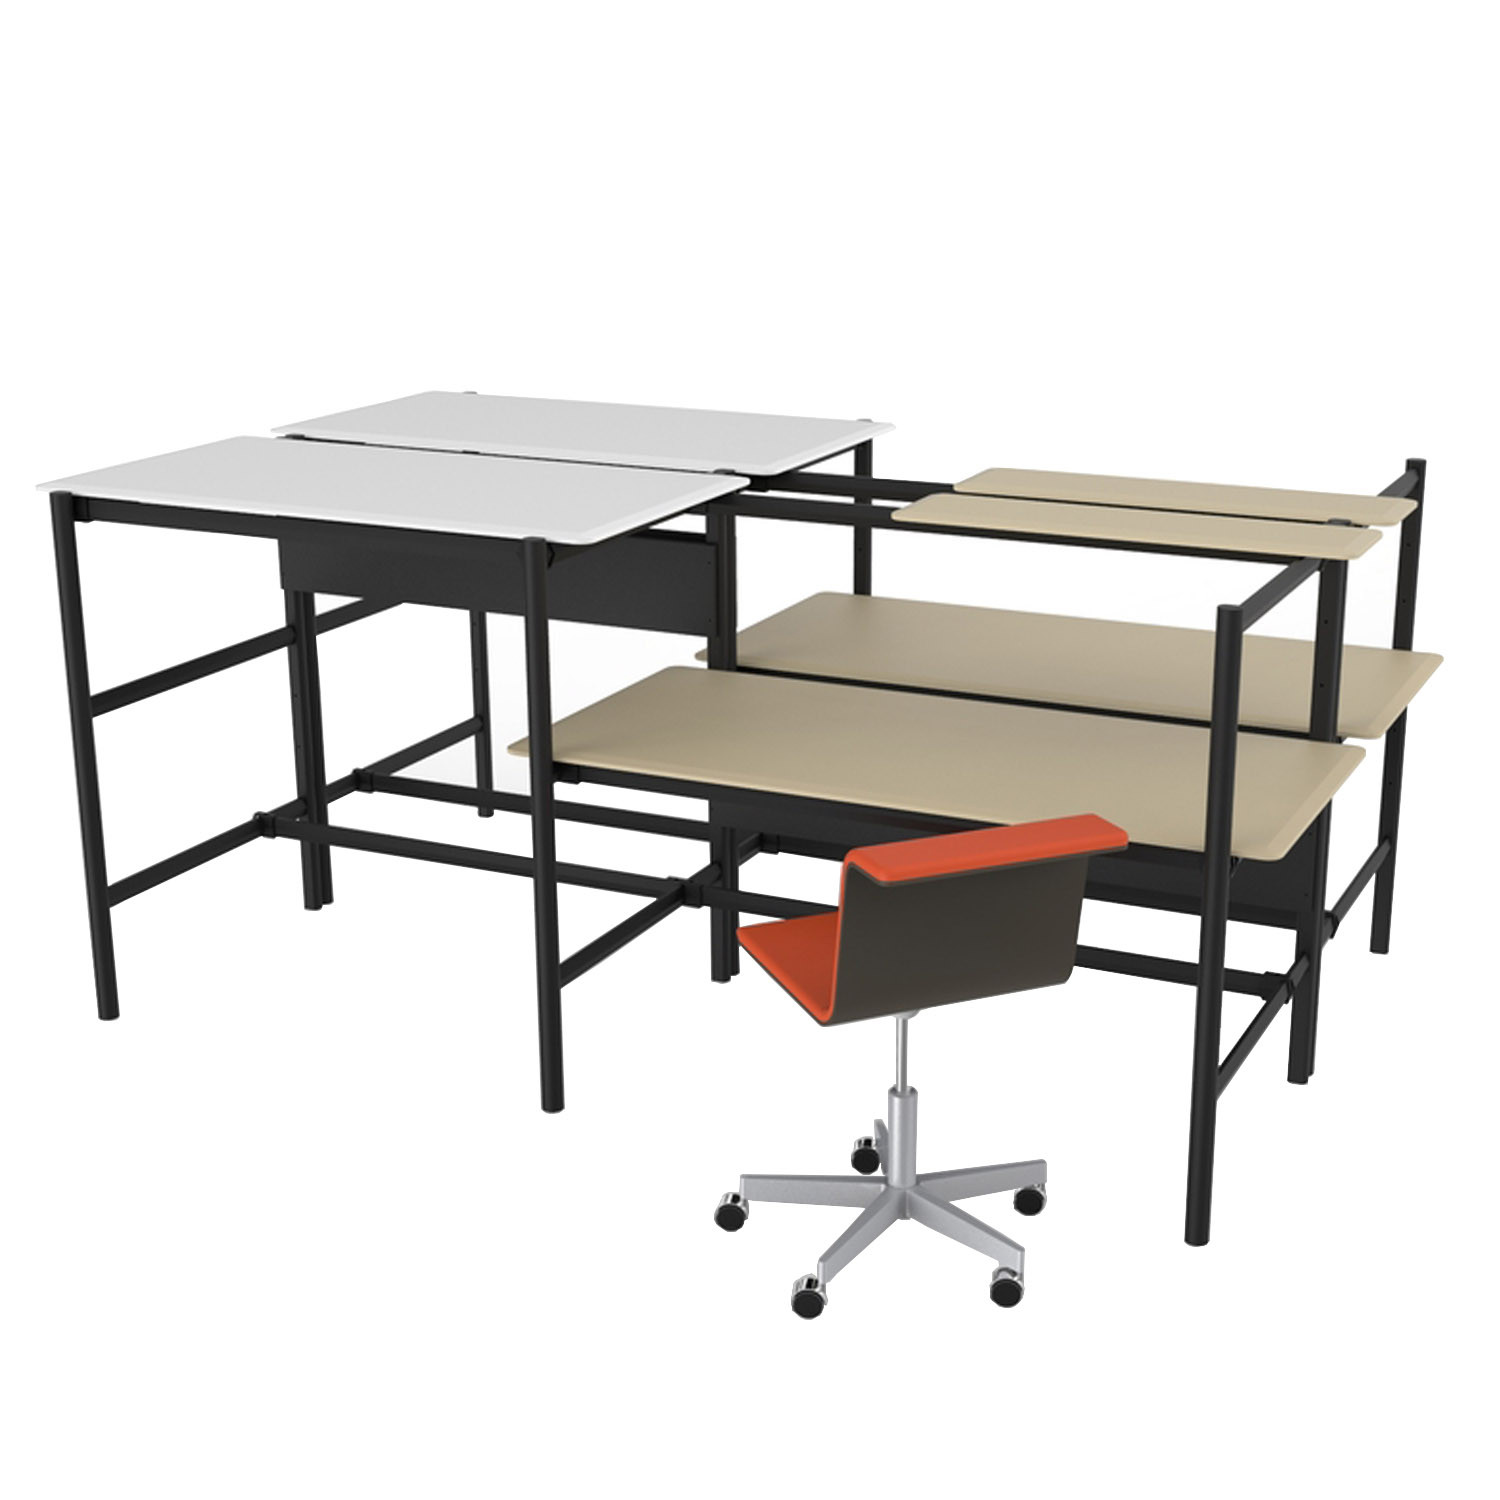 Dan Modular Bench Desks